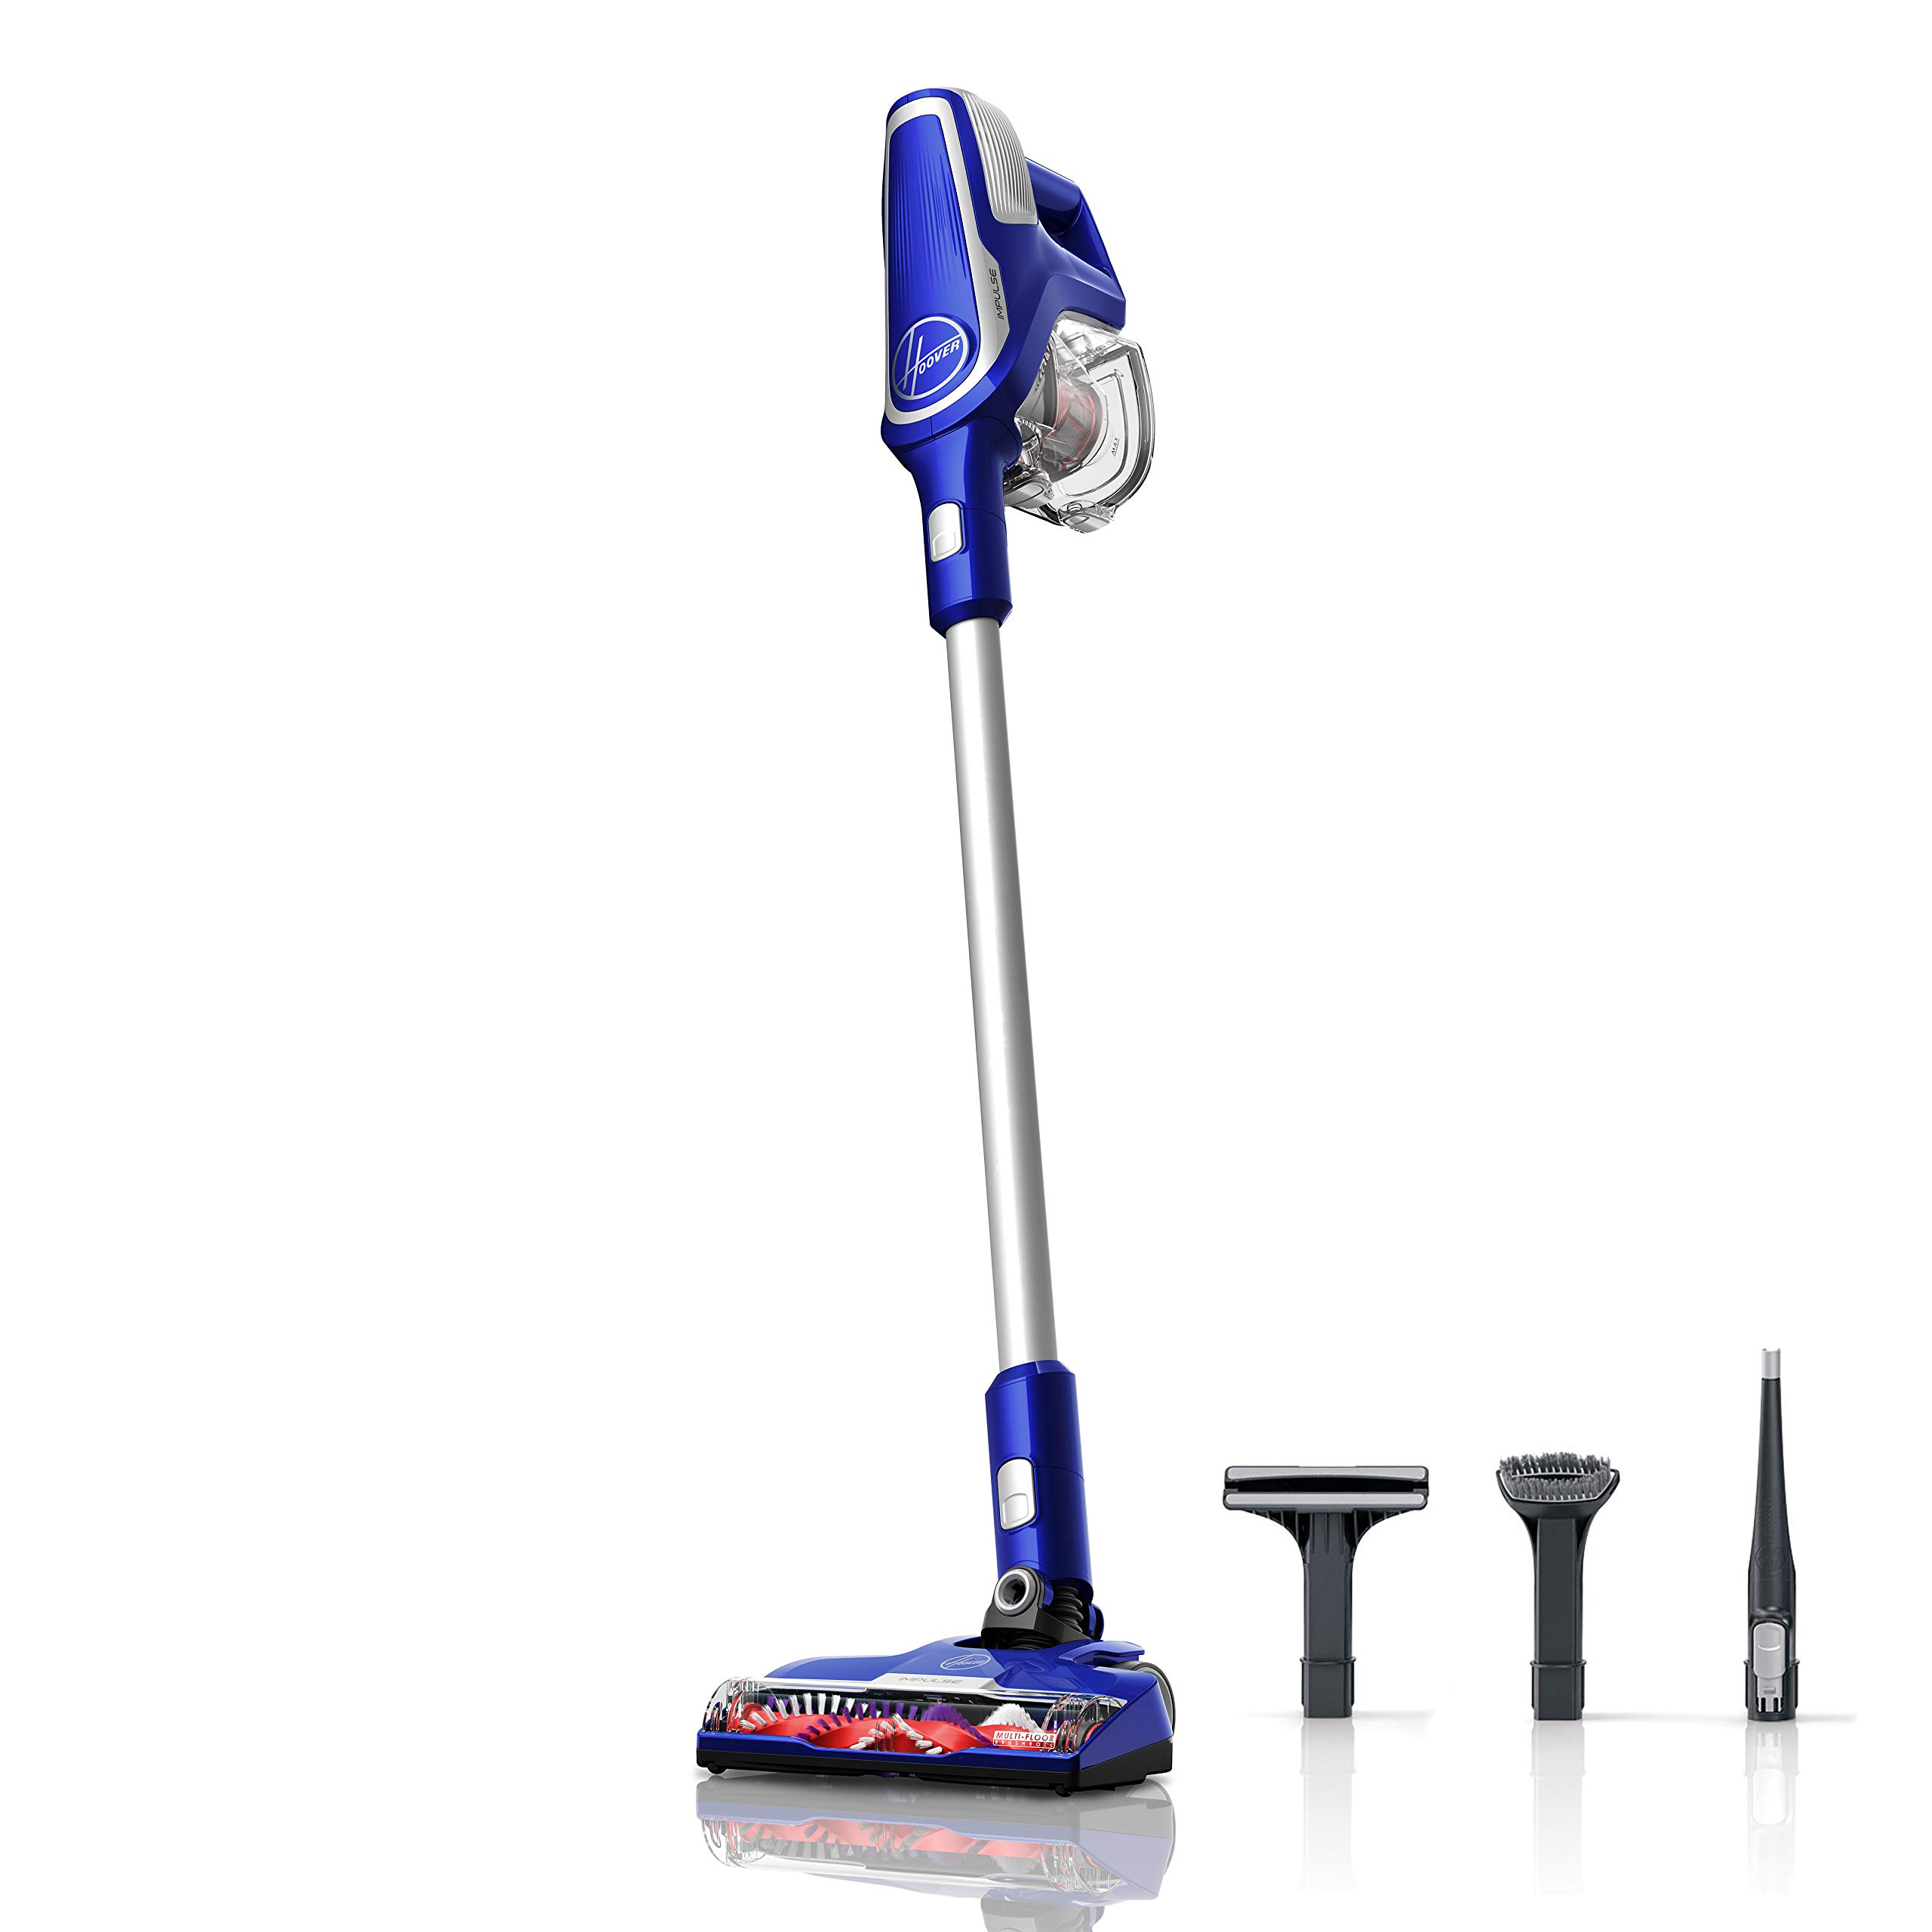 Hoover Impulse Cordless Stick Vacuum Cleaner with Swivel Steering, BH53020, Blue